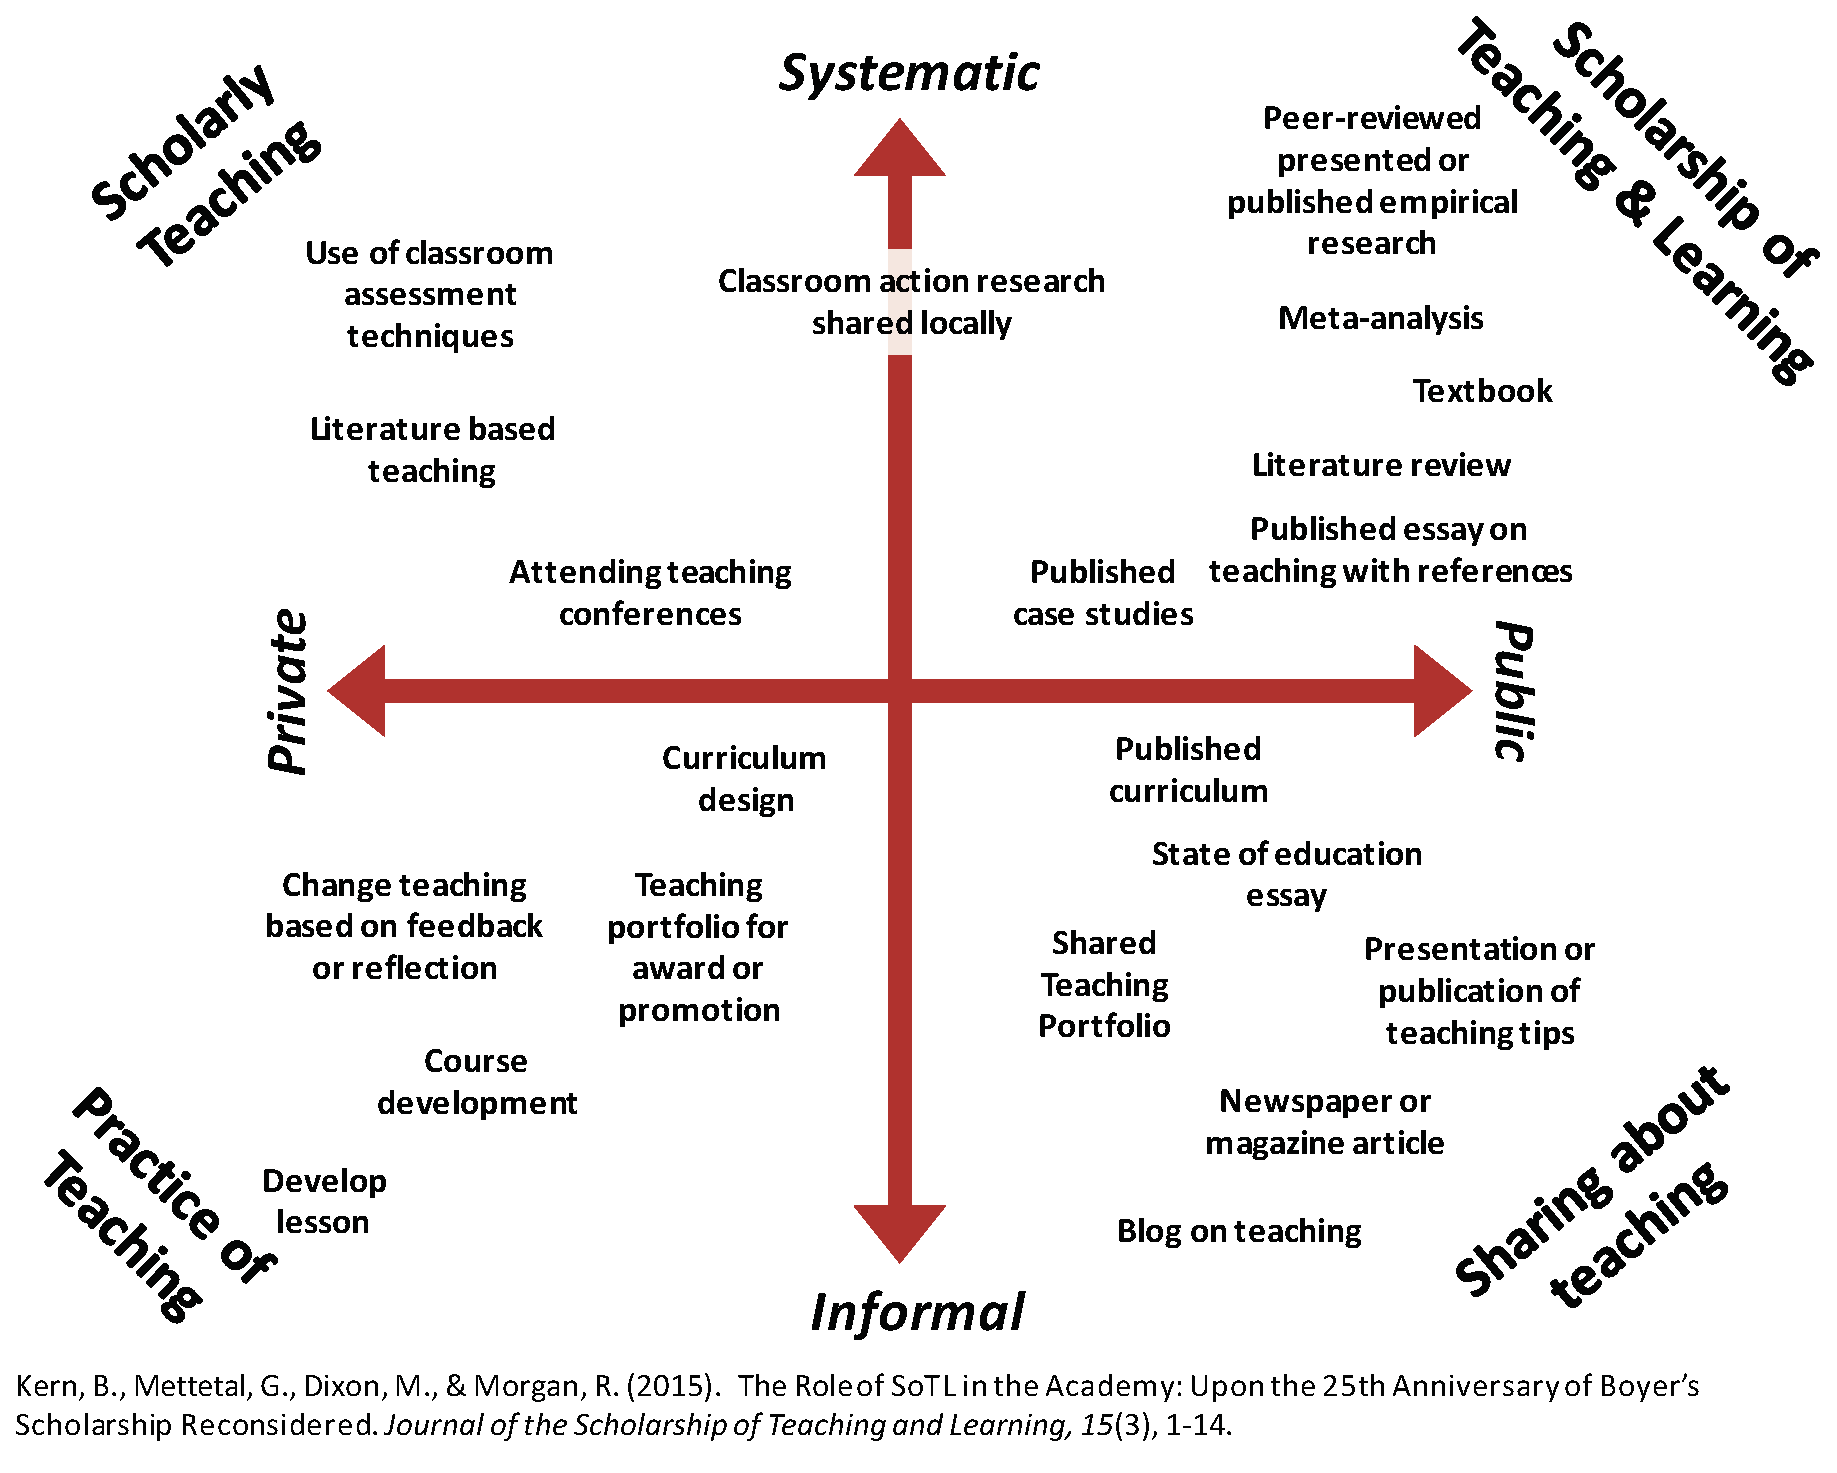 Figure 1. Dimensions of Activities Related to Teaching (DART)